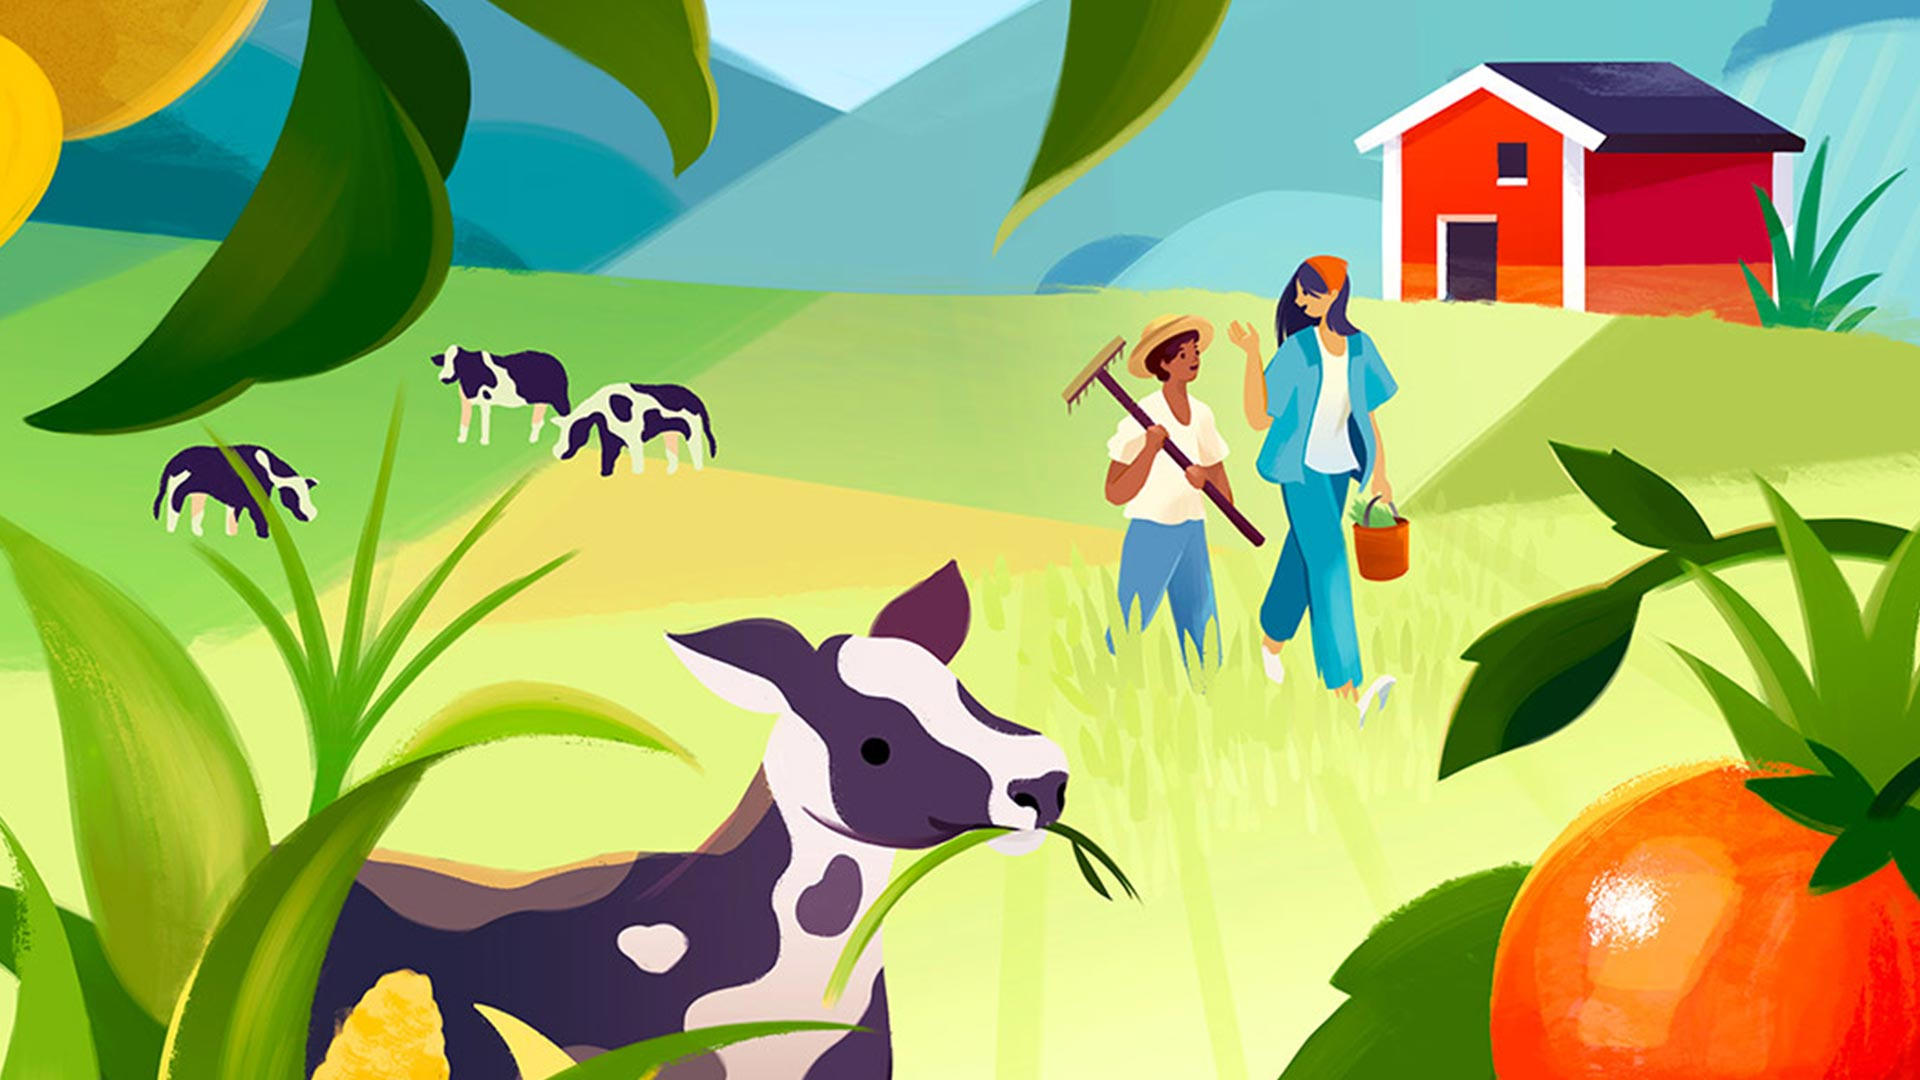 A colorful illustration of an old and young farmer walking together though a farm.